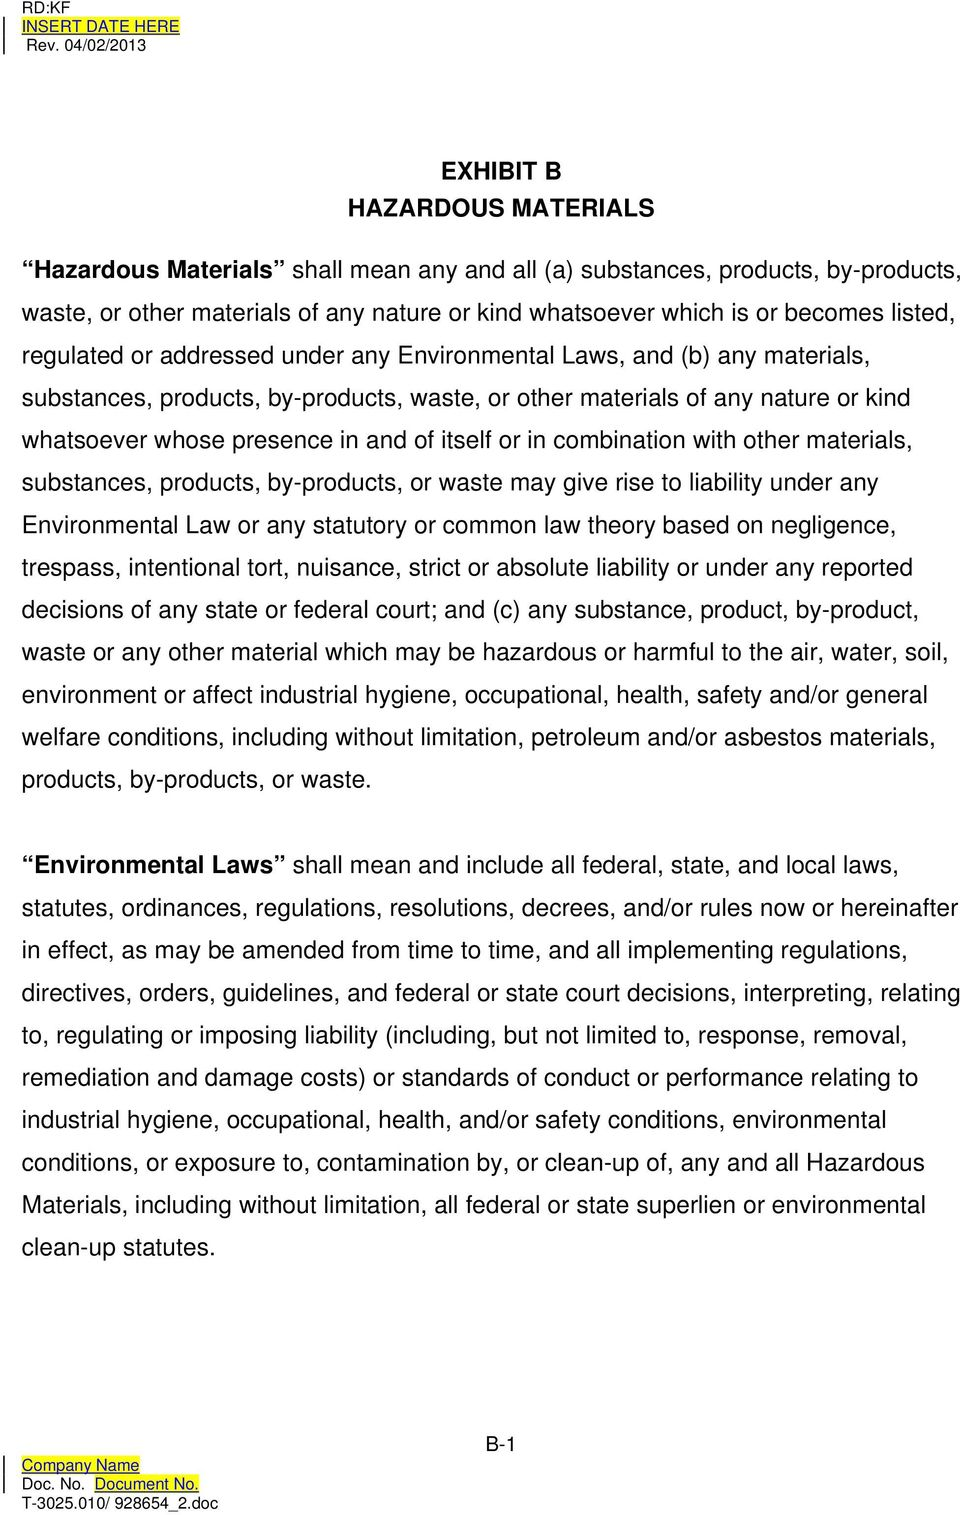 itself or in combination with other materials, substances, products, by-products, or waste may give rise to liability under any Environmental Law or any statutory or common law theory based on